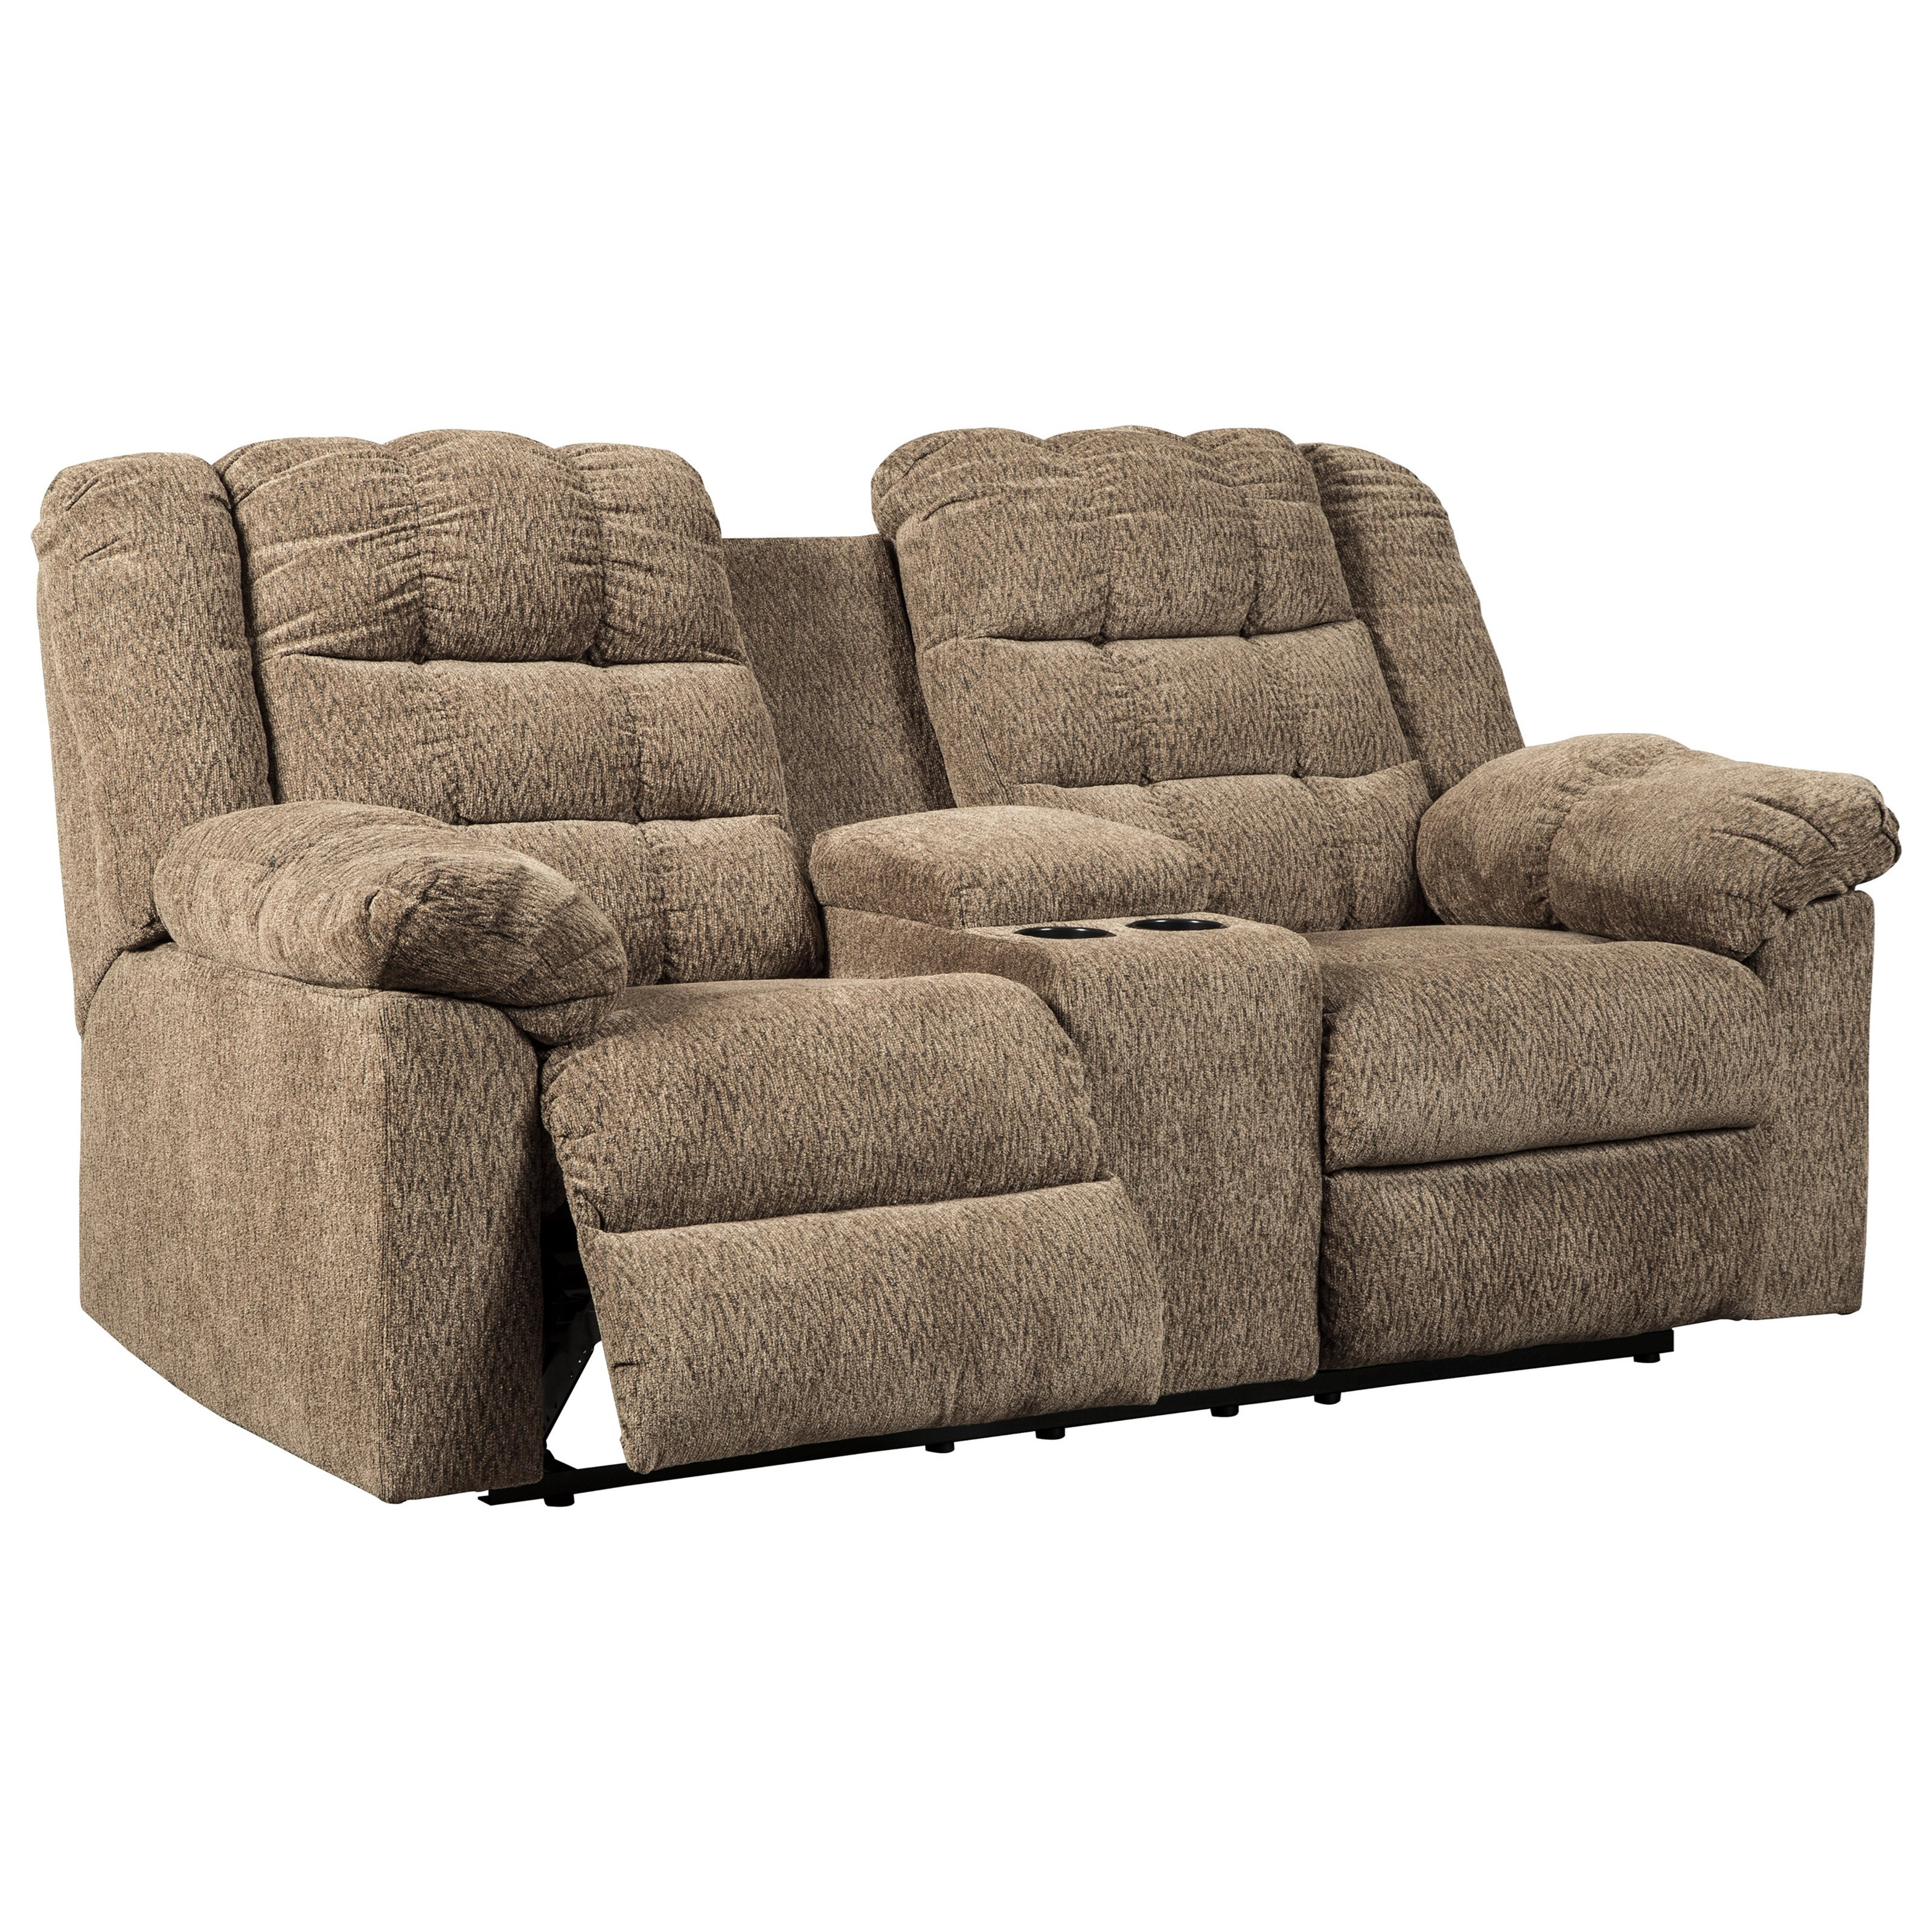 Winfred Casual Double Reclining Loveseat W/ Console & 2